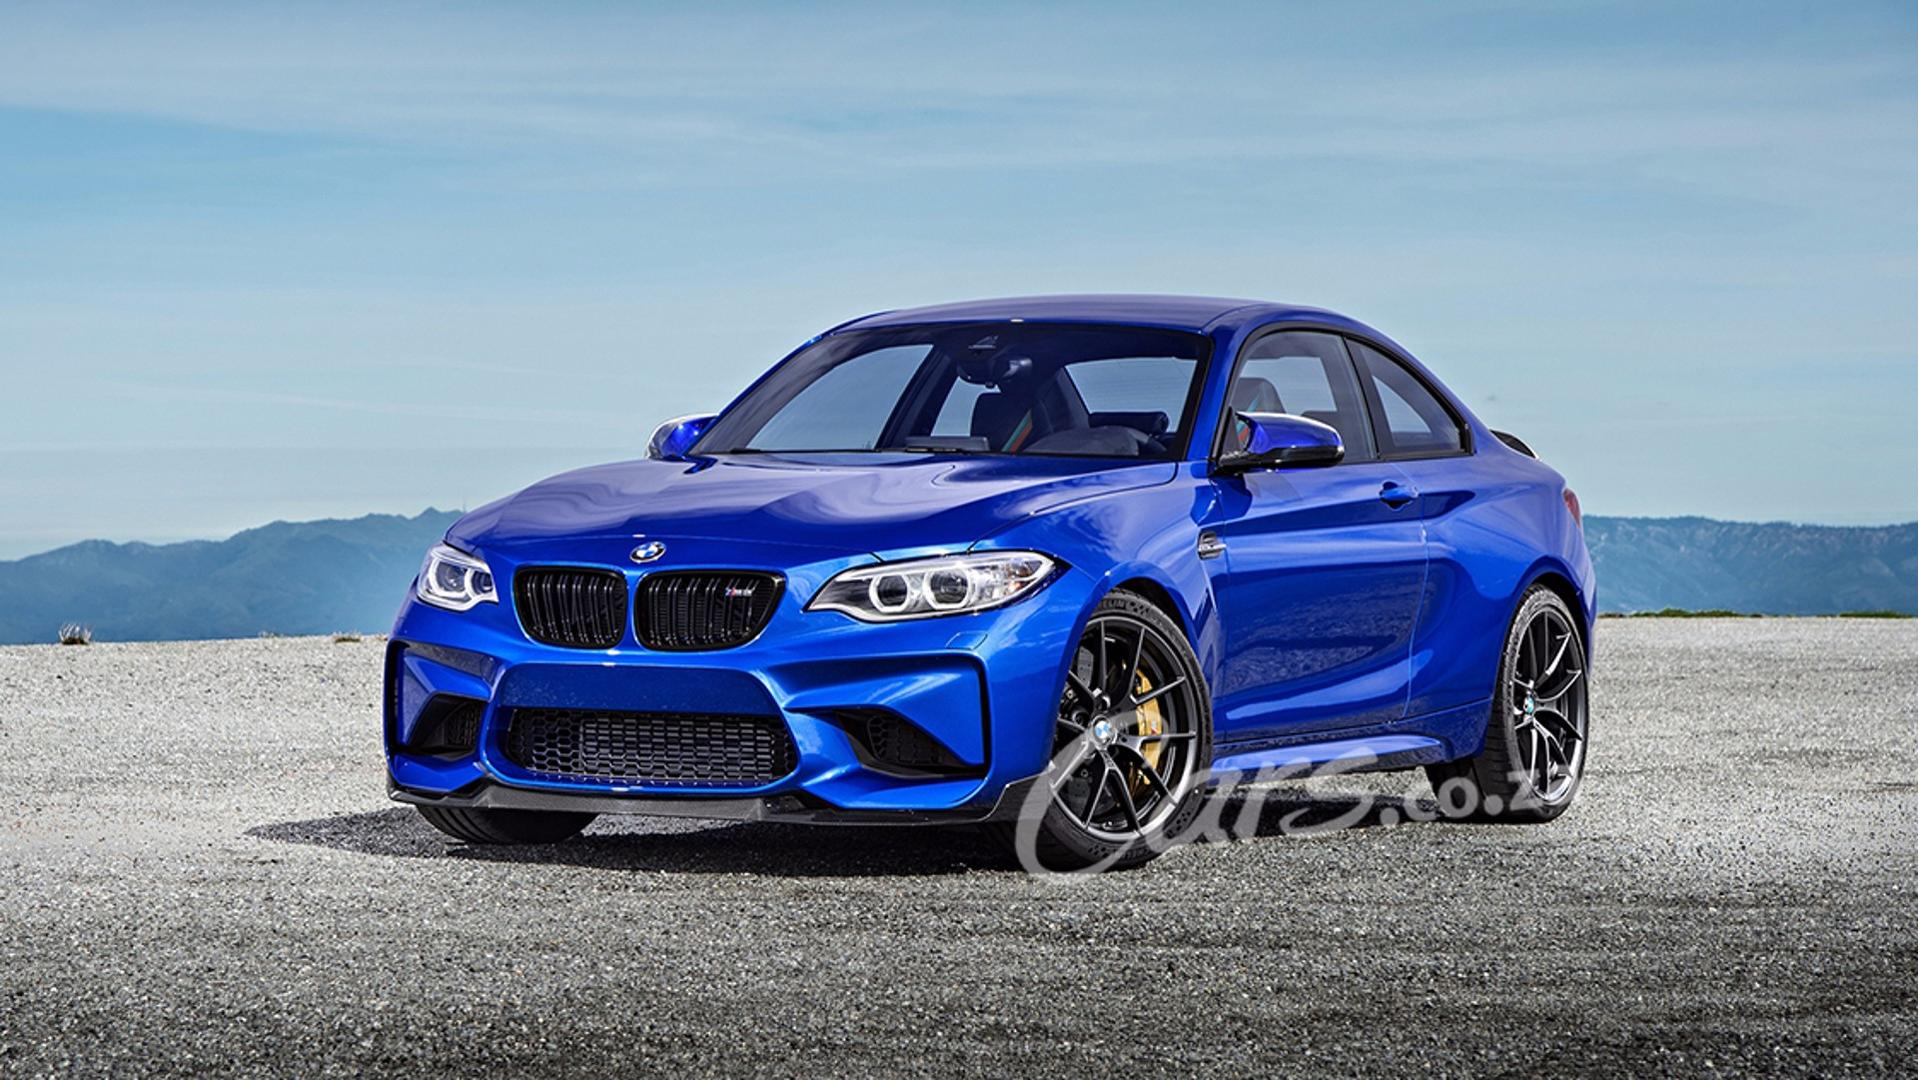 New Cars 2018 >> BMW M2 CS Details Emerge To Reveal Only 1,000 Units Will Be Made